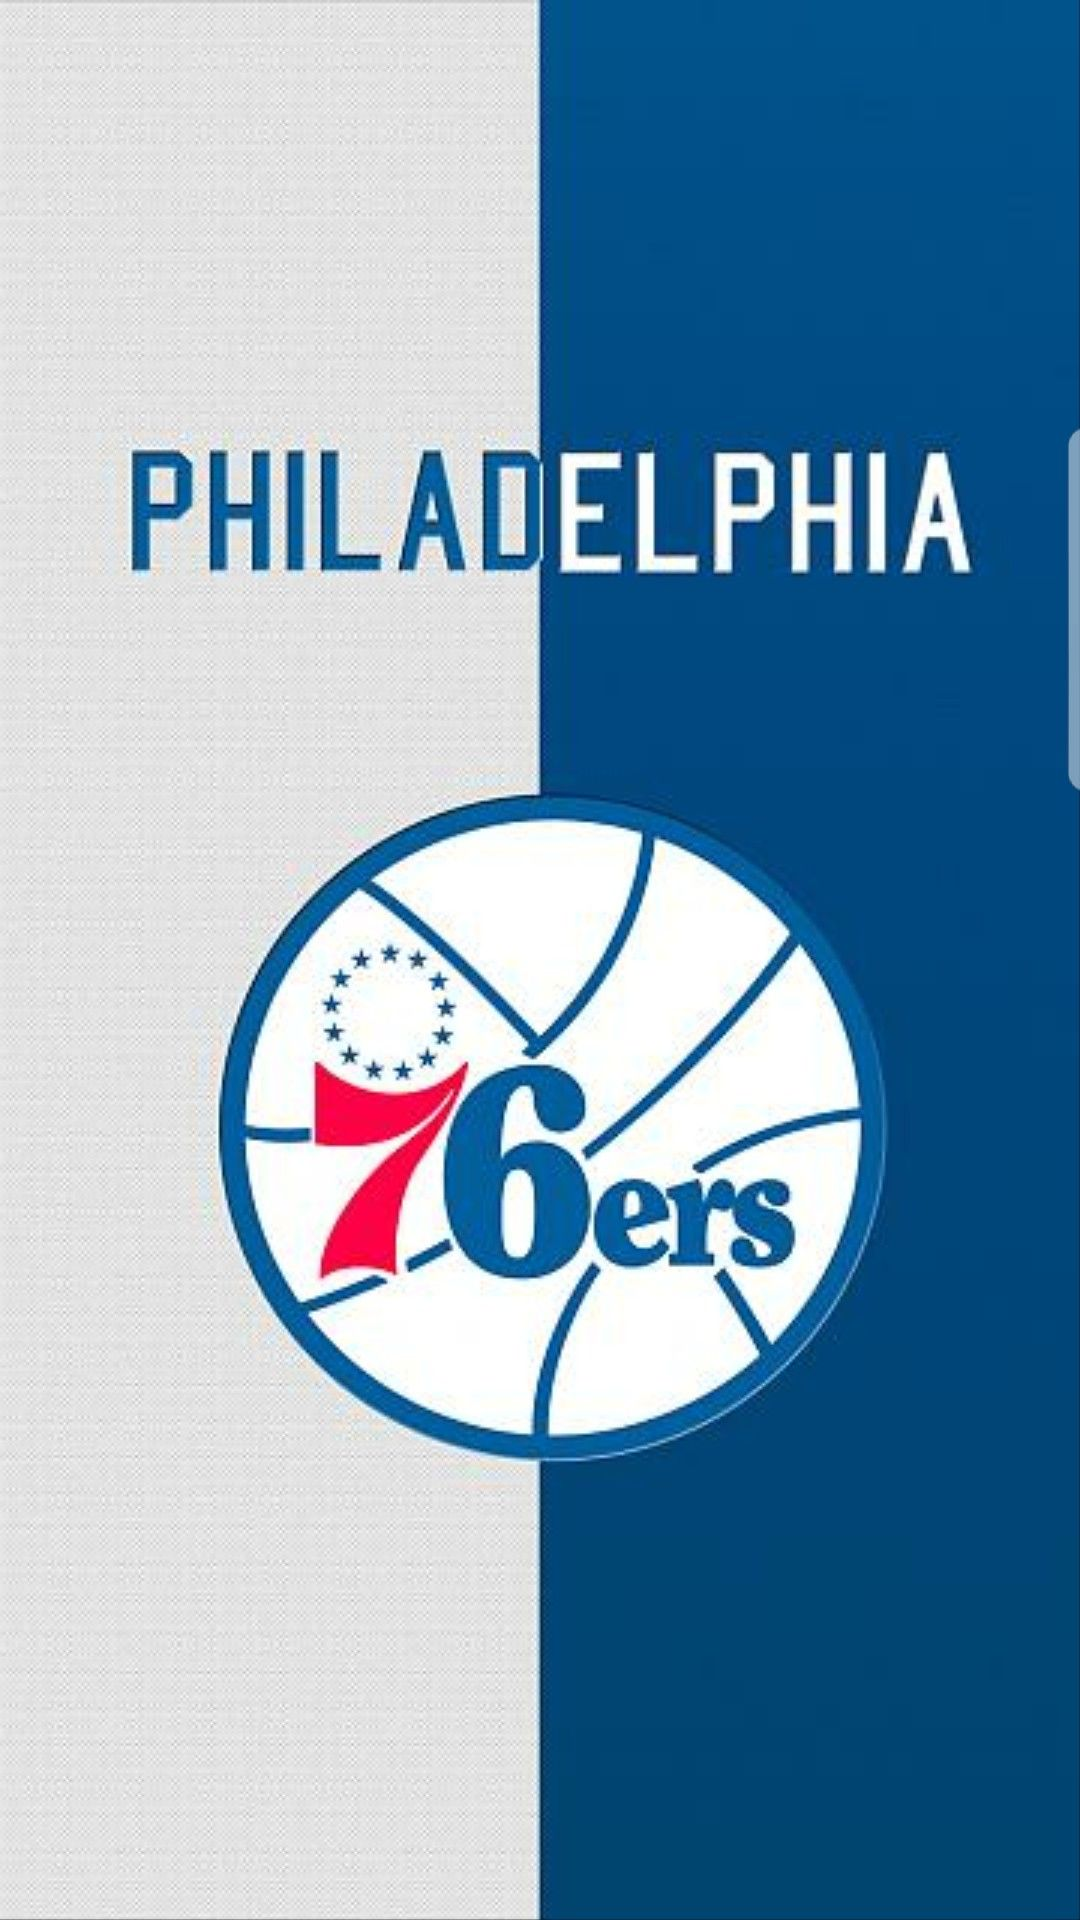 Pin By Miguel Angel On 76ers Sports Team Logos 76ers Nba Logo